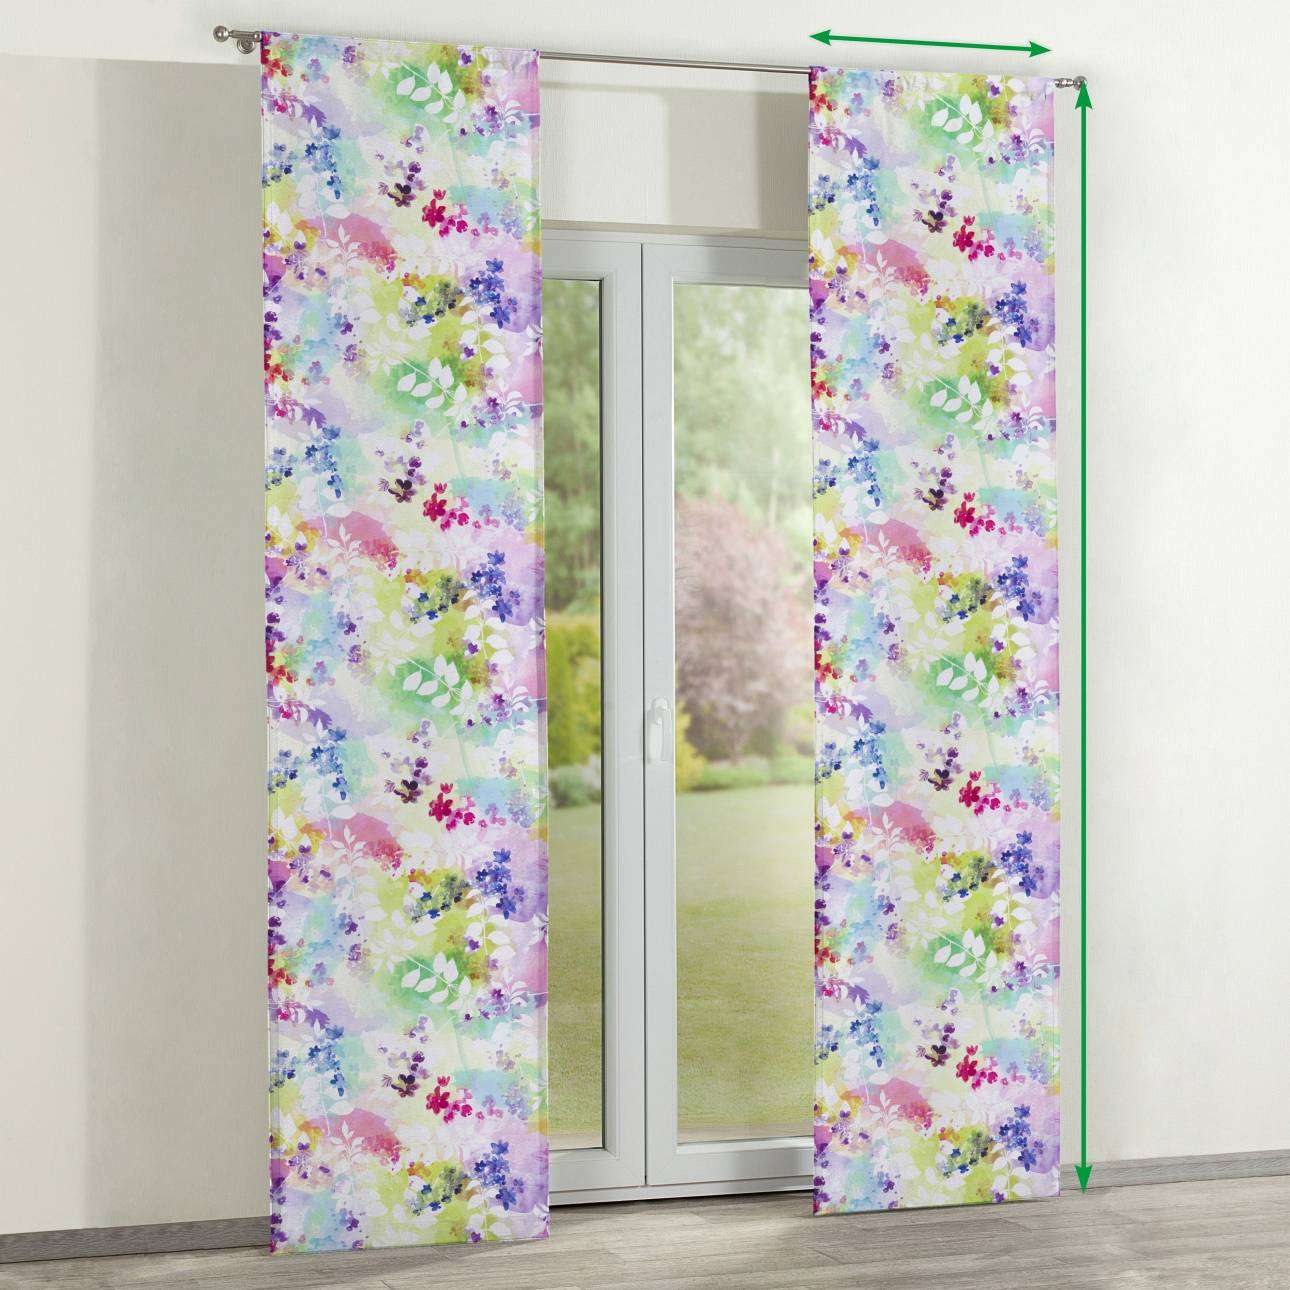 Slot panel curtains – Set of 2 in collection Monet, fabric: 140-07